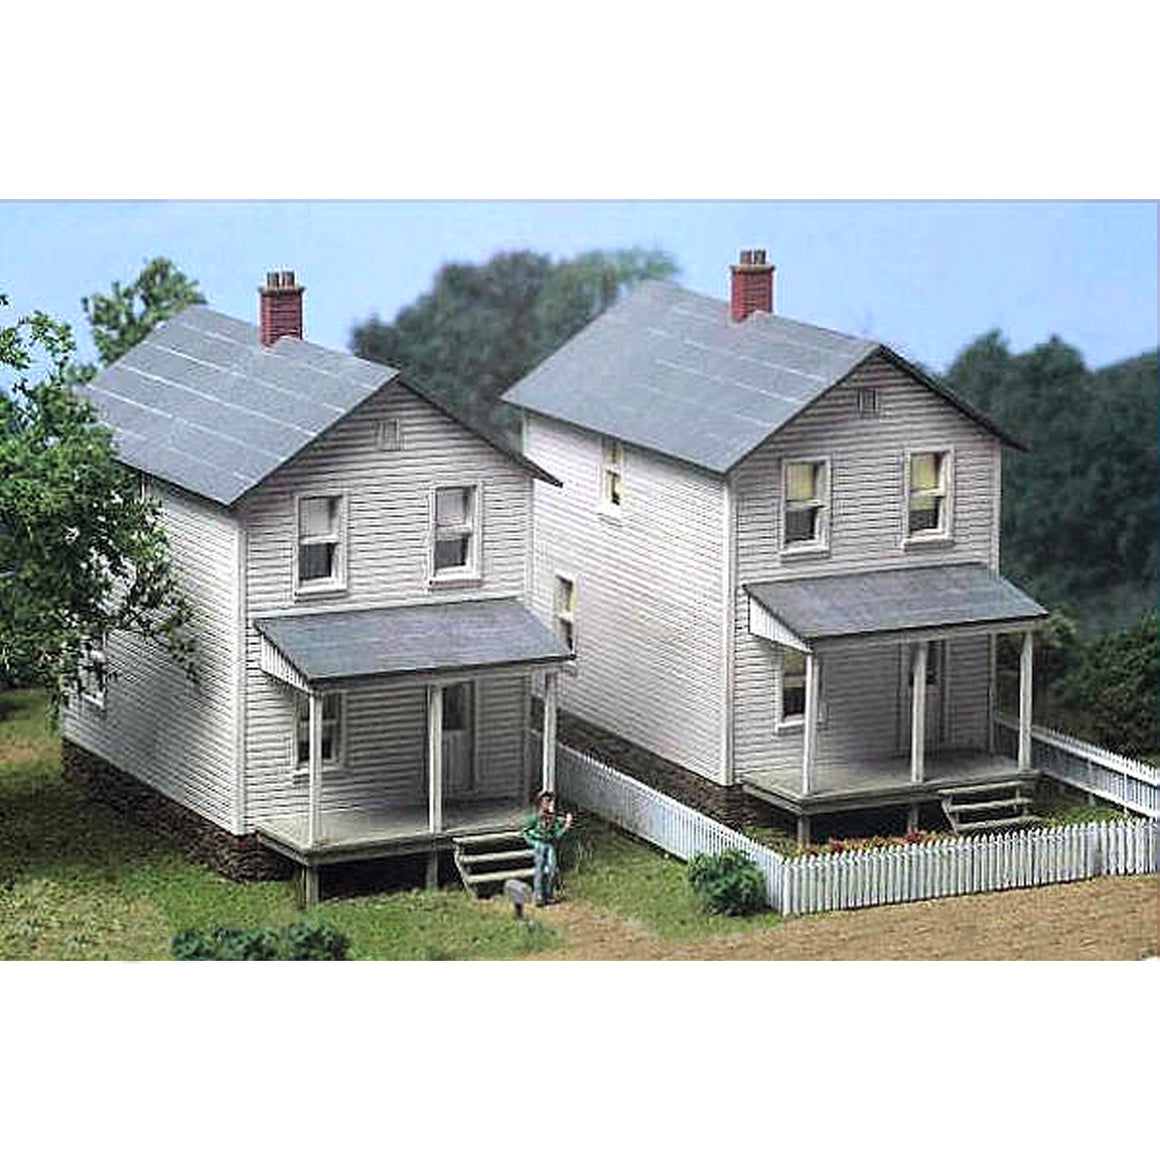 HO Scale: Railroad Street Company House - Three-pack - Kit